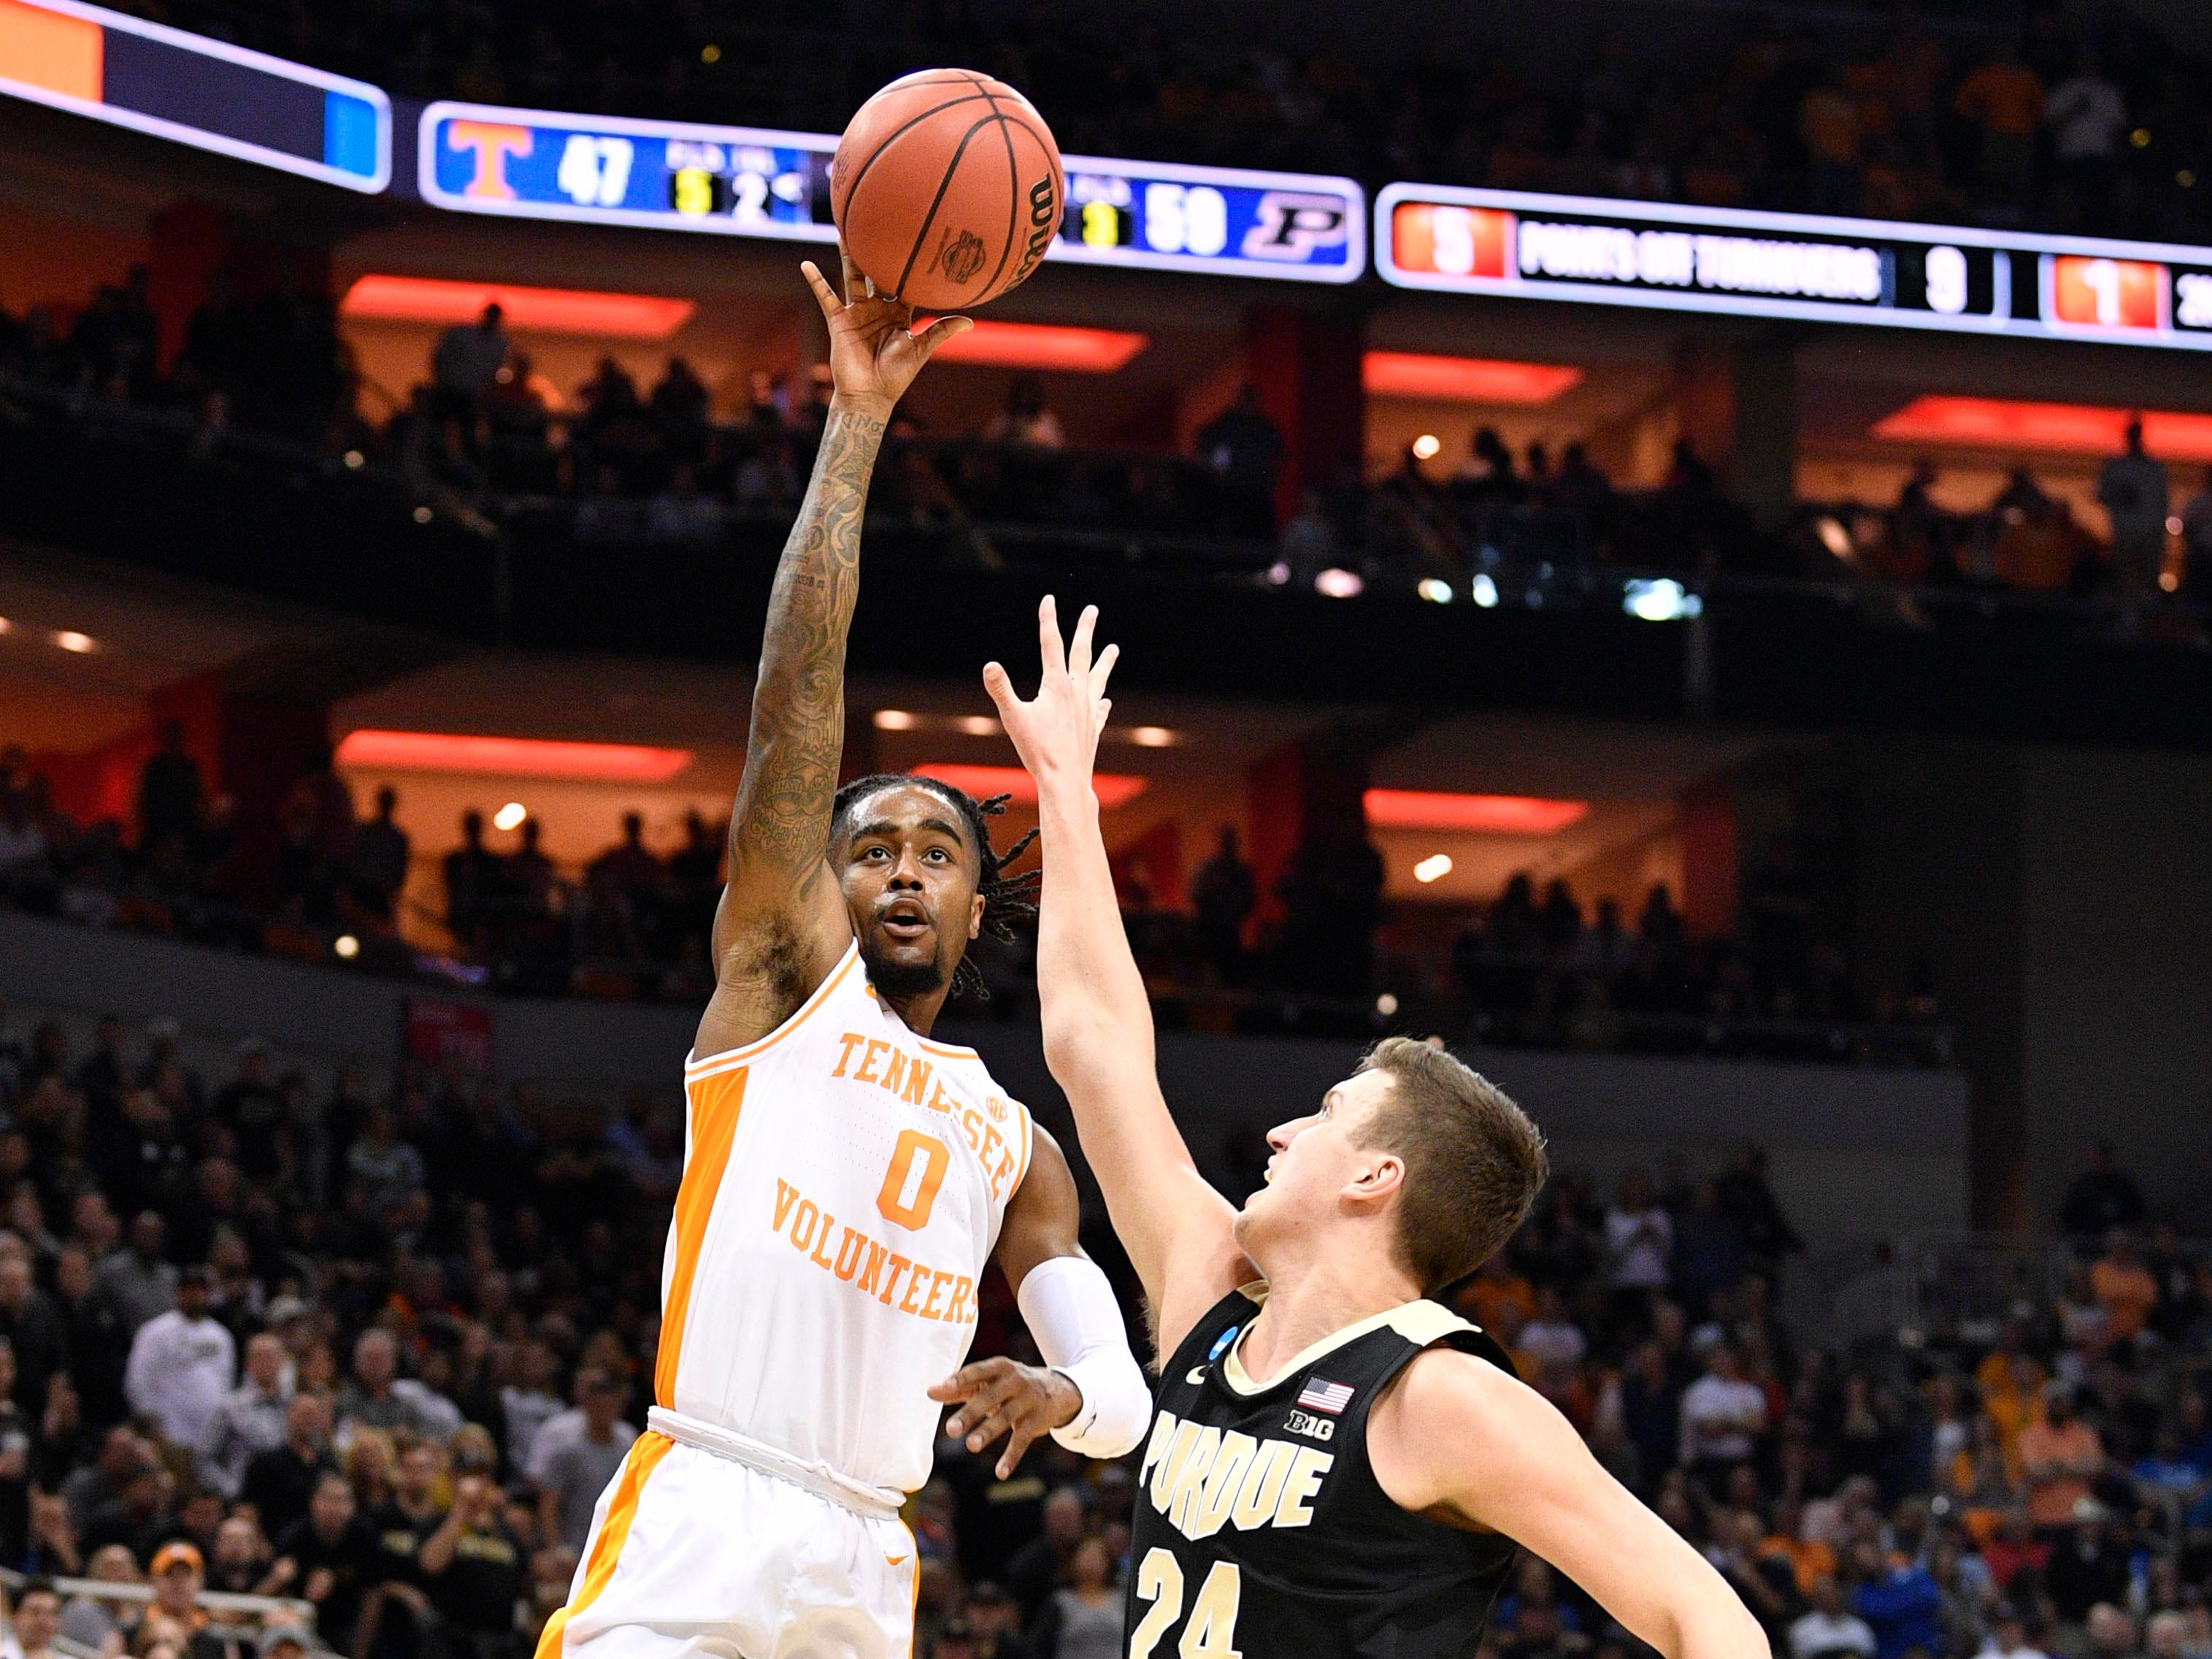 Mar 28, 2019; Louisville, KY, United States; Tennessee Volunteers guard Jordan Bone (0) shoots as Purdue Boilermakers forward Grady Eifert (24) defends during the second half in the semifinals of the south regional of the 2019 NCAA Tournament at KFC Yum Center. Mandatory Credit: Jamie Rhodes-USA TODAY Sports